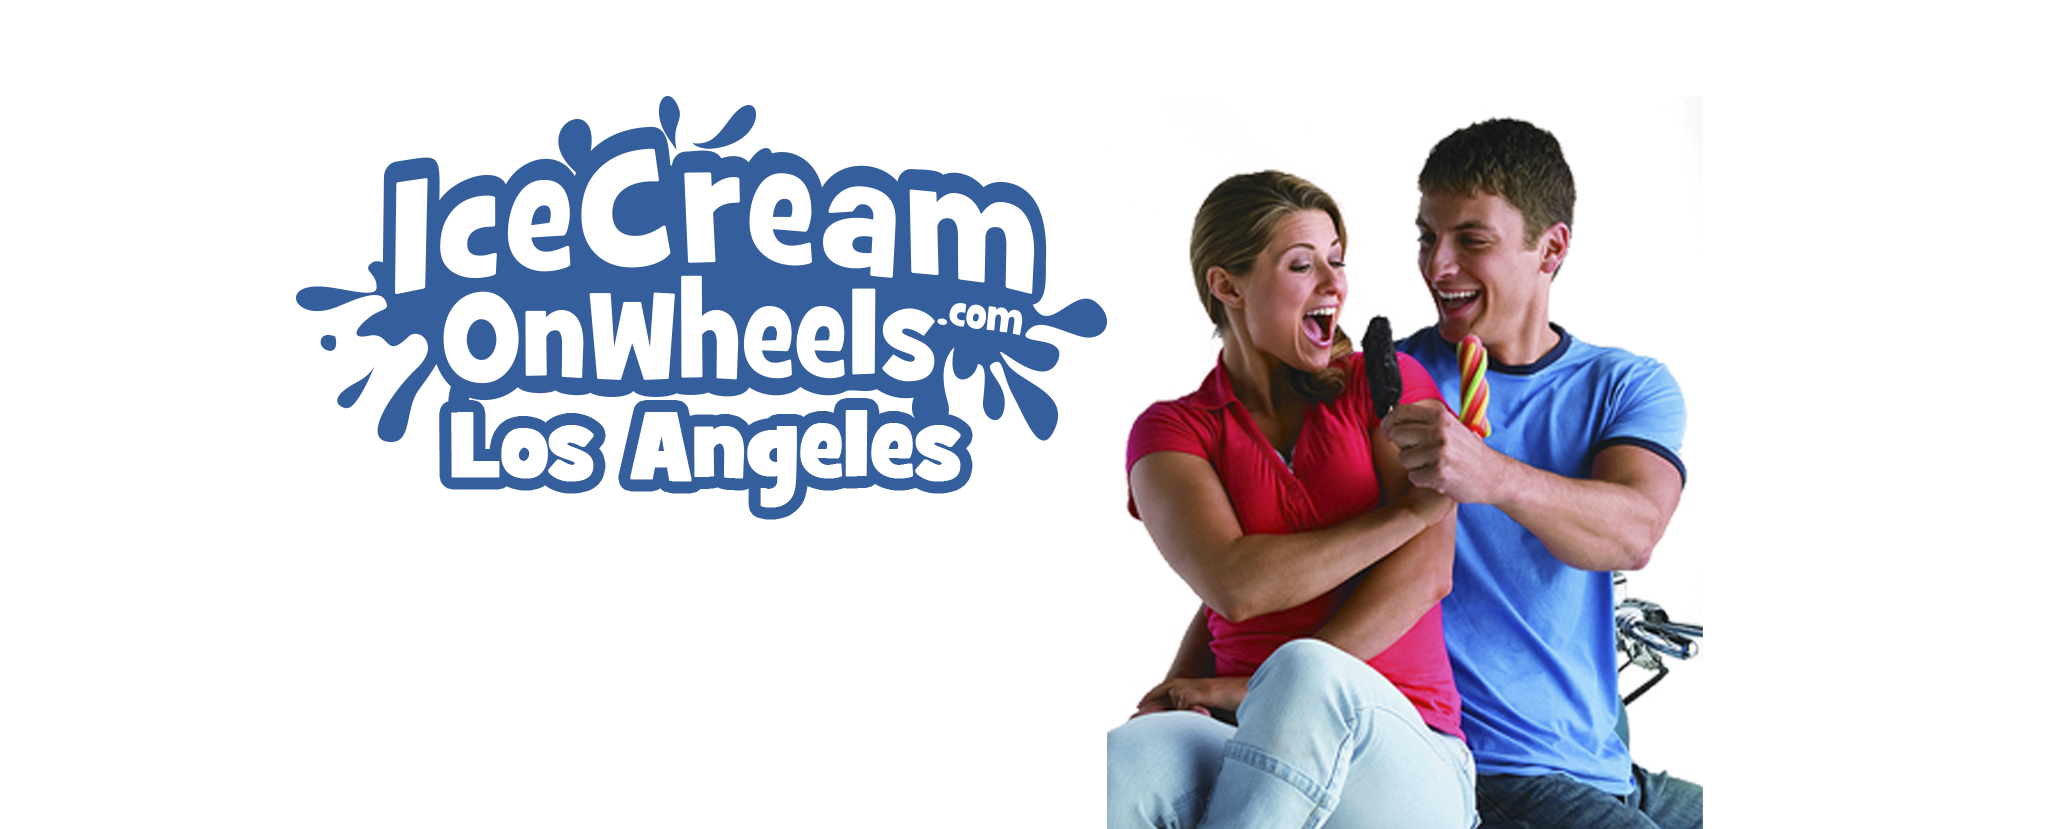 Community Events Ice Cream Trucks San Bernardino County